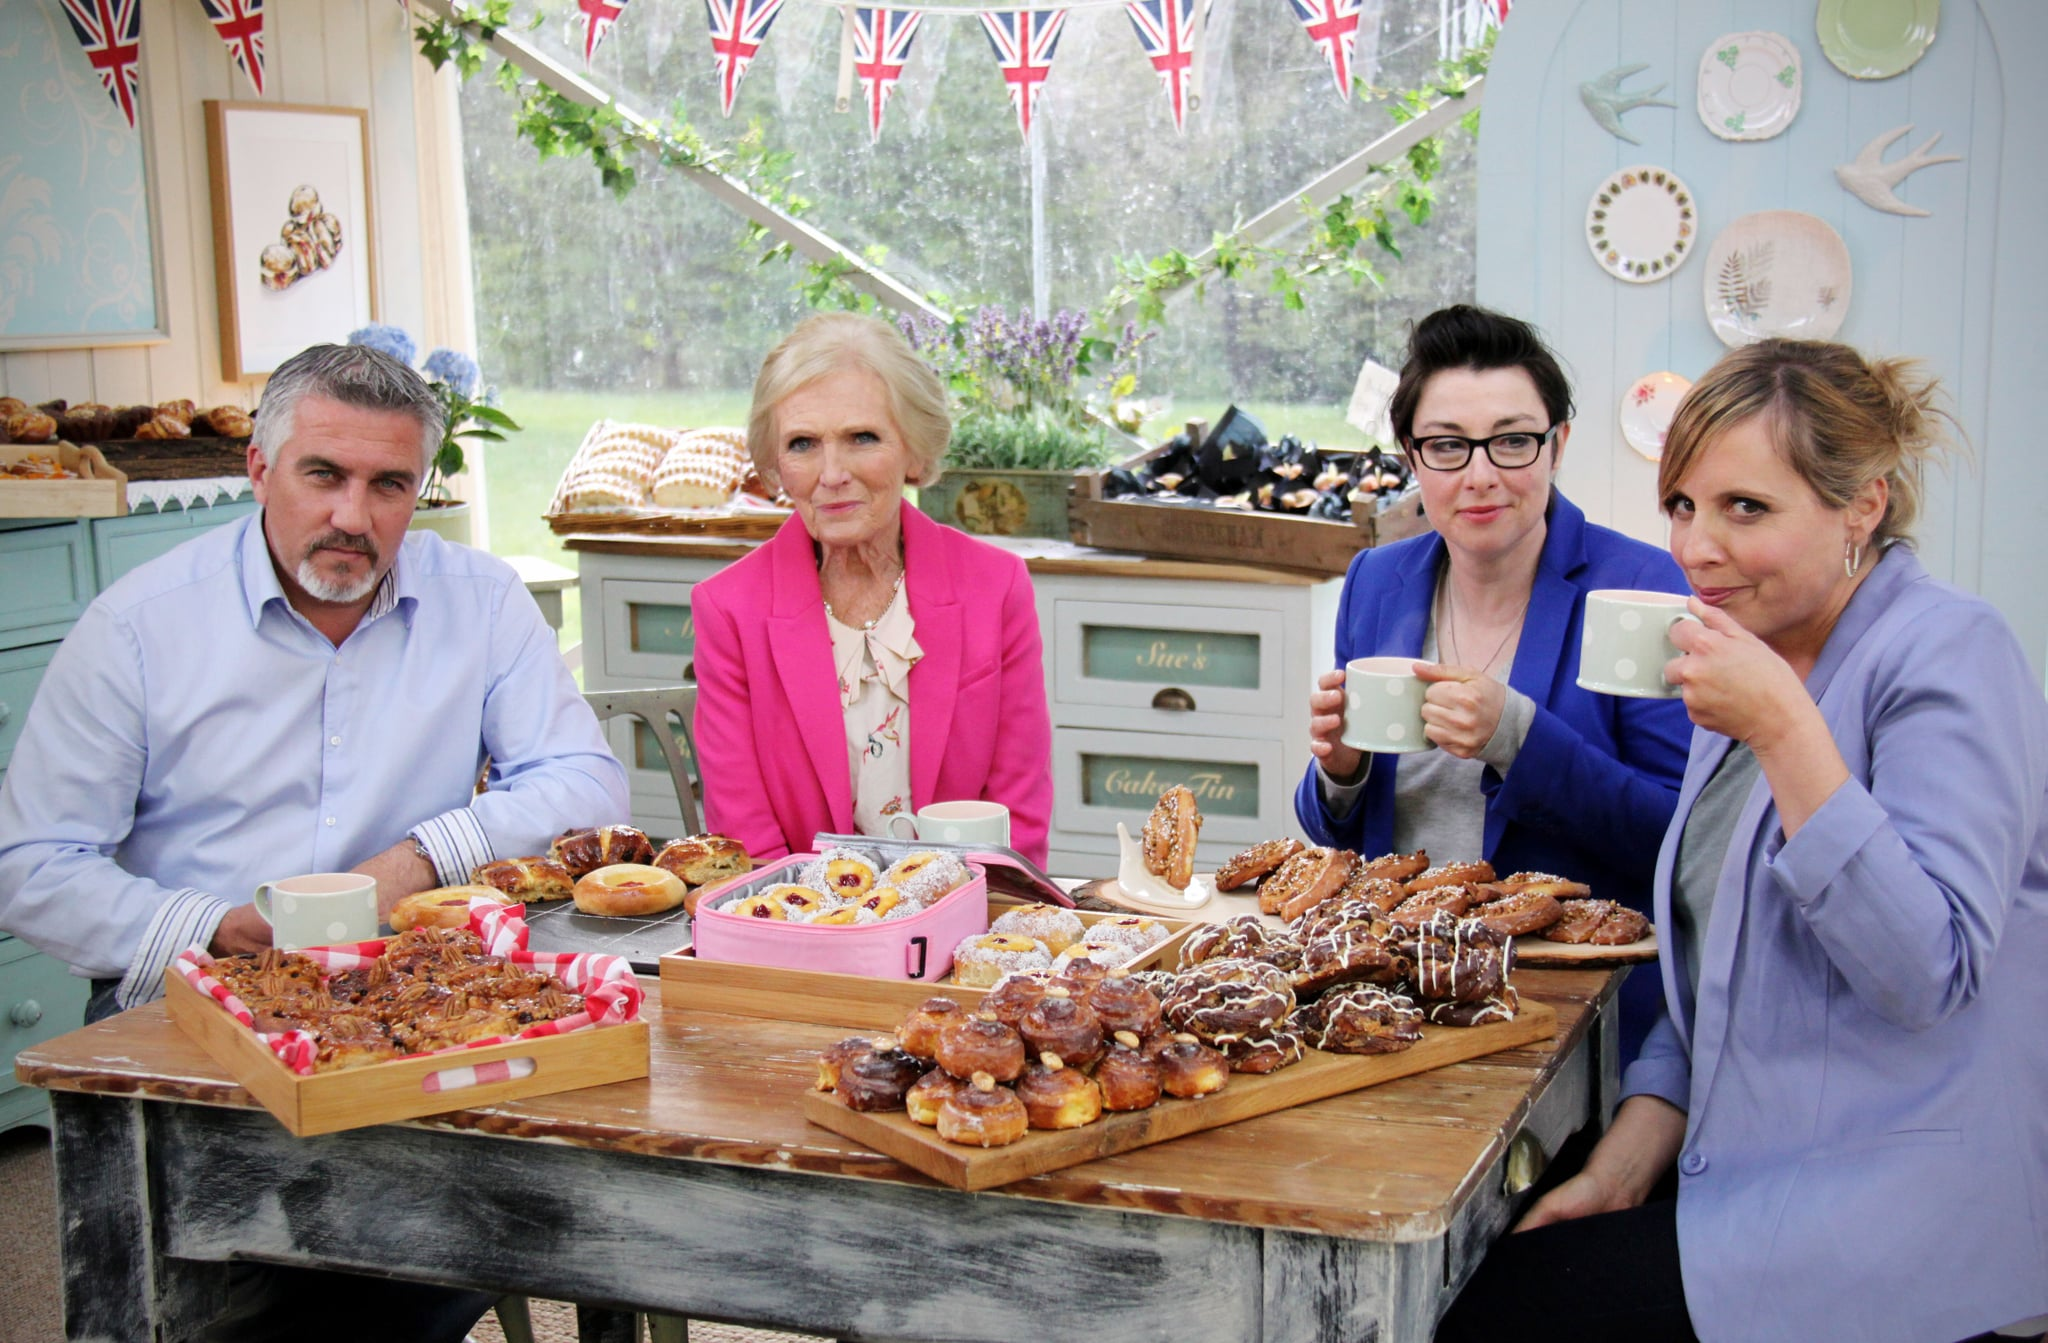 THE GREAT BRITISH BAKE OFF (aka THE GREAT BRITISH BAKING SHOW), from left: judge Paul Hollywood, judge Mary Berry, co-host/presenter Sue Perkins, co-host/presenter Mel Giedroyc, 'Sweet Dough', (Series 4, originally aired in U.K. on Sept. 24, 2013 / Season 2, aired in U.S. on Oct. 11, 2015). photo:  Love Productions/PBS / Courtesy: Everett Collection